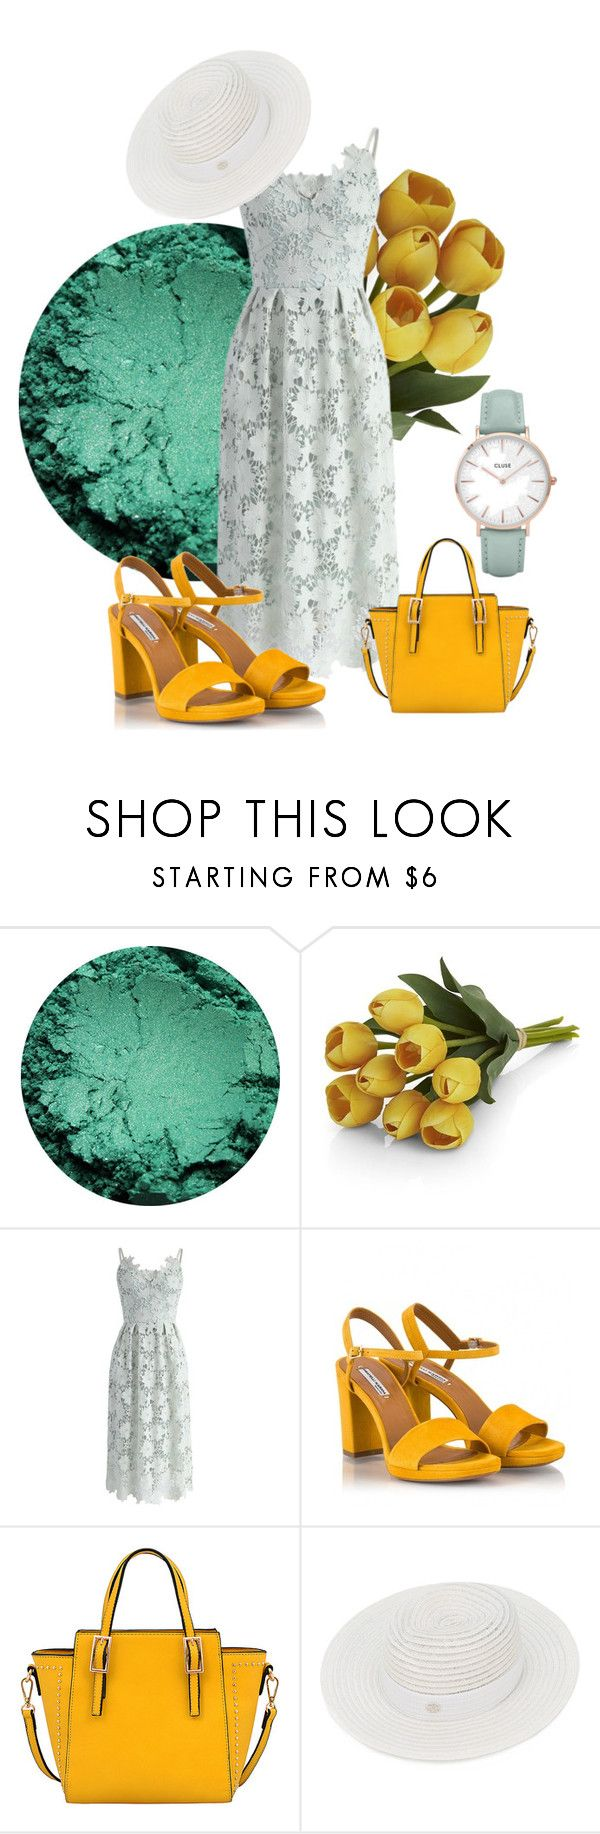 """""""Mint Dreams"""" by plinker on Polyvore featuring Crate and Barrel, Chicwish, Fratelli Karida, Mellow World, Maison Michel and CLUSE"""